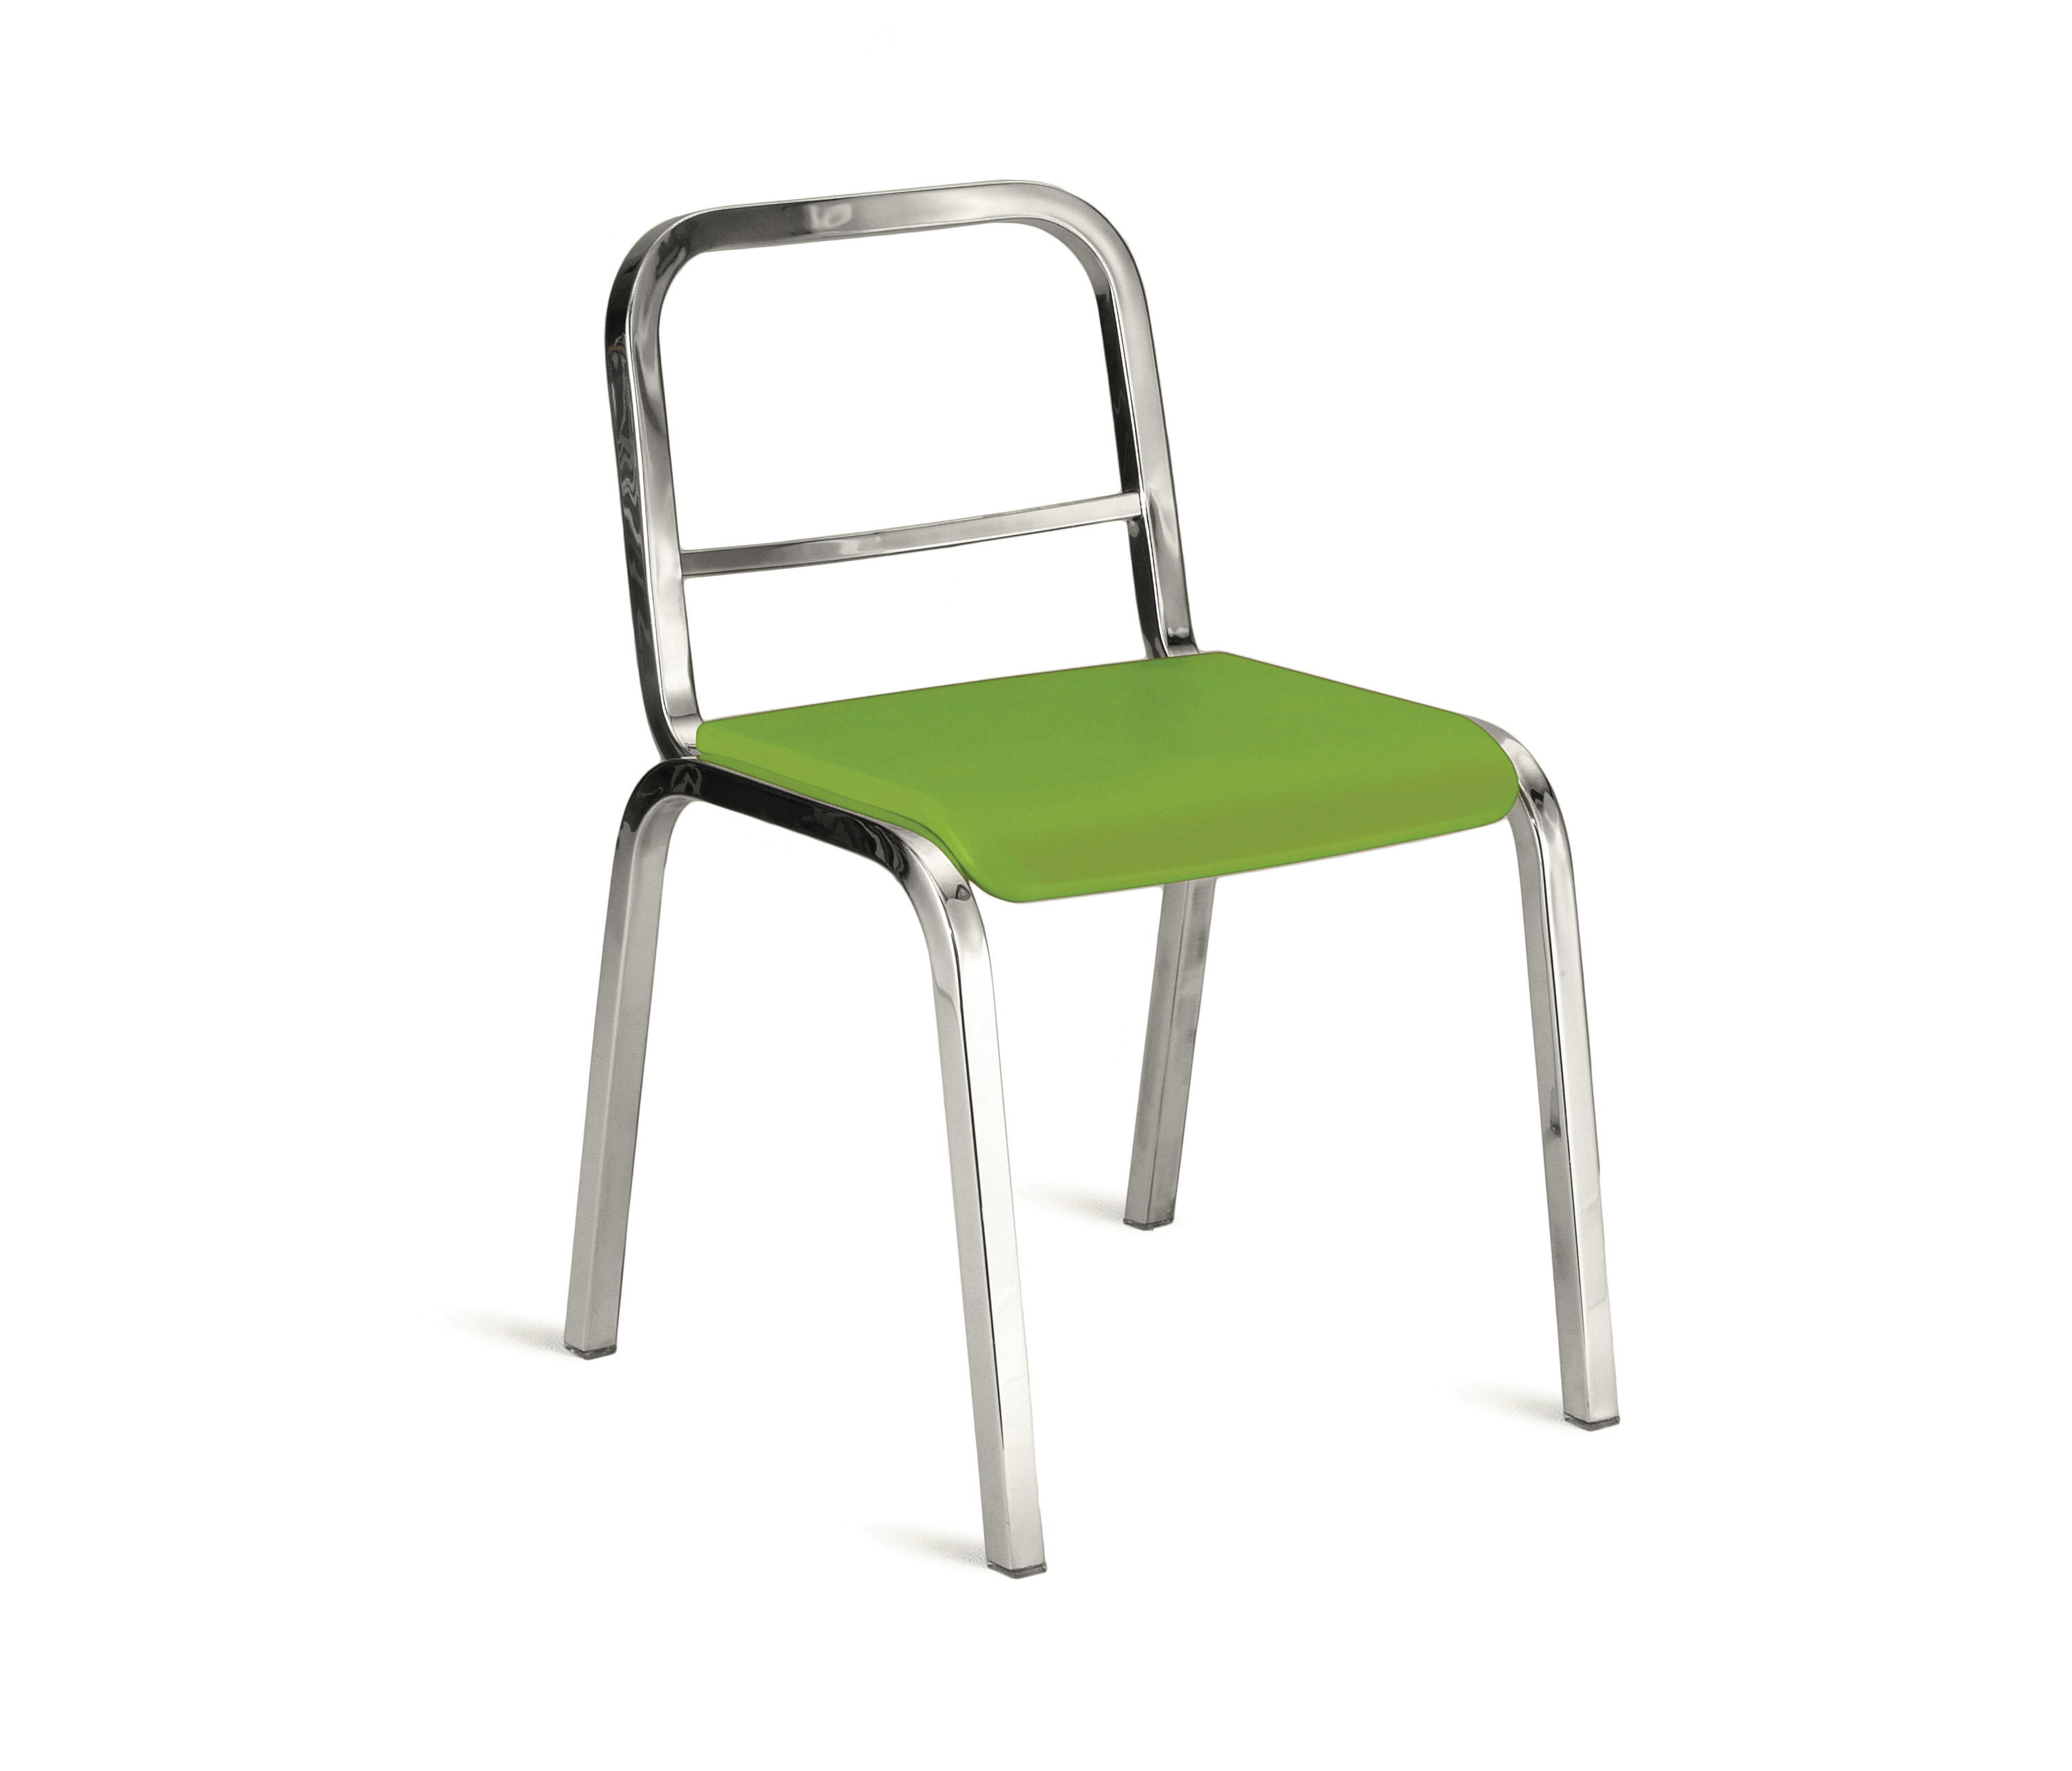 ... Nine 0™ Stacking Chair By Emeco | Restaurant Chairs ...